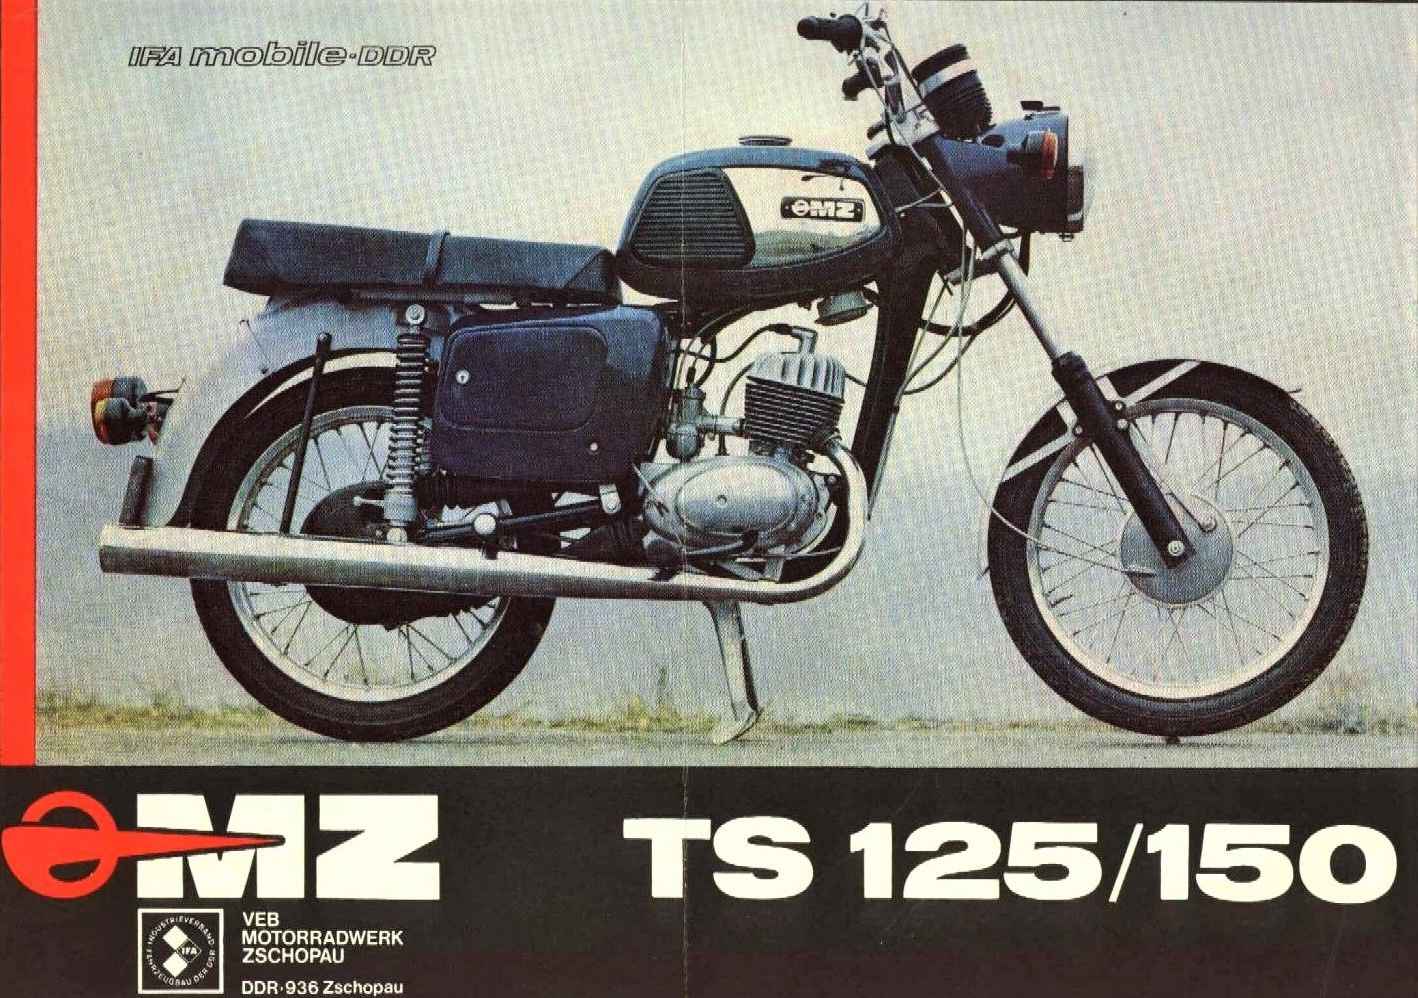 Mz Ts 125 150 Cool Cars Motorcycle Moped